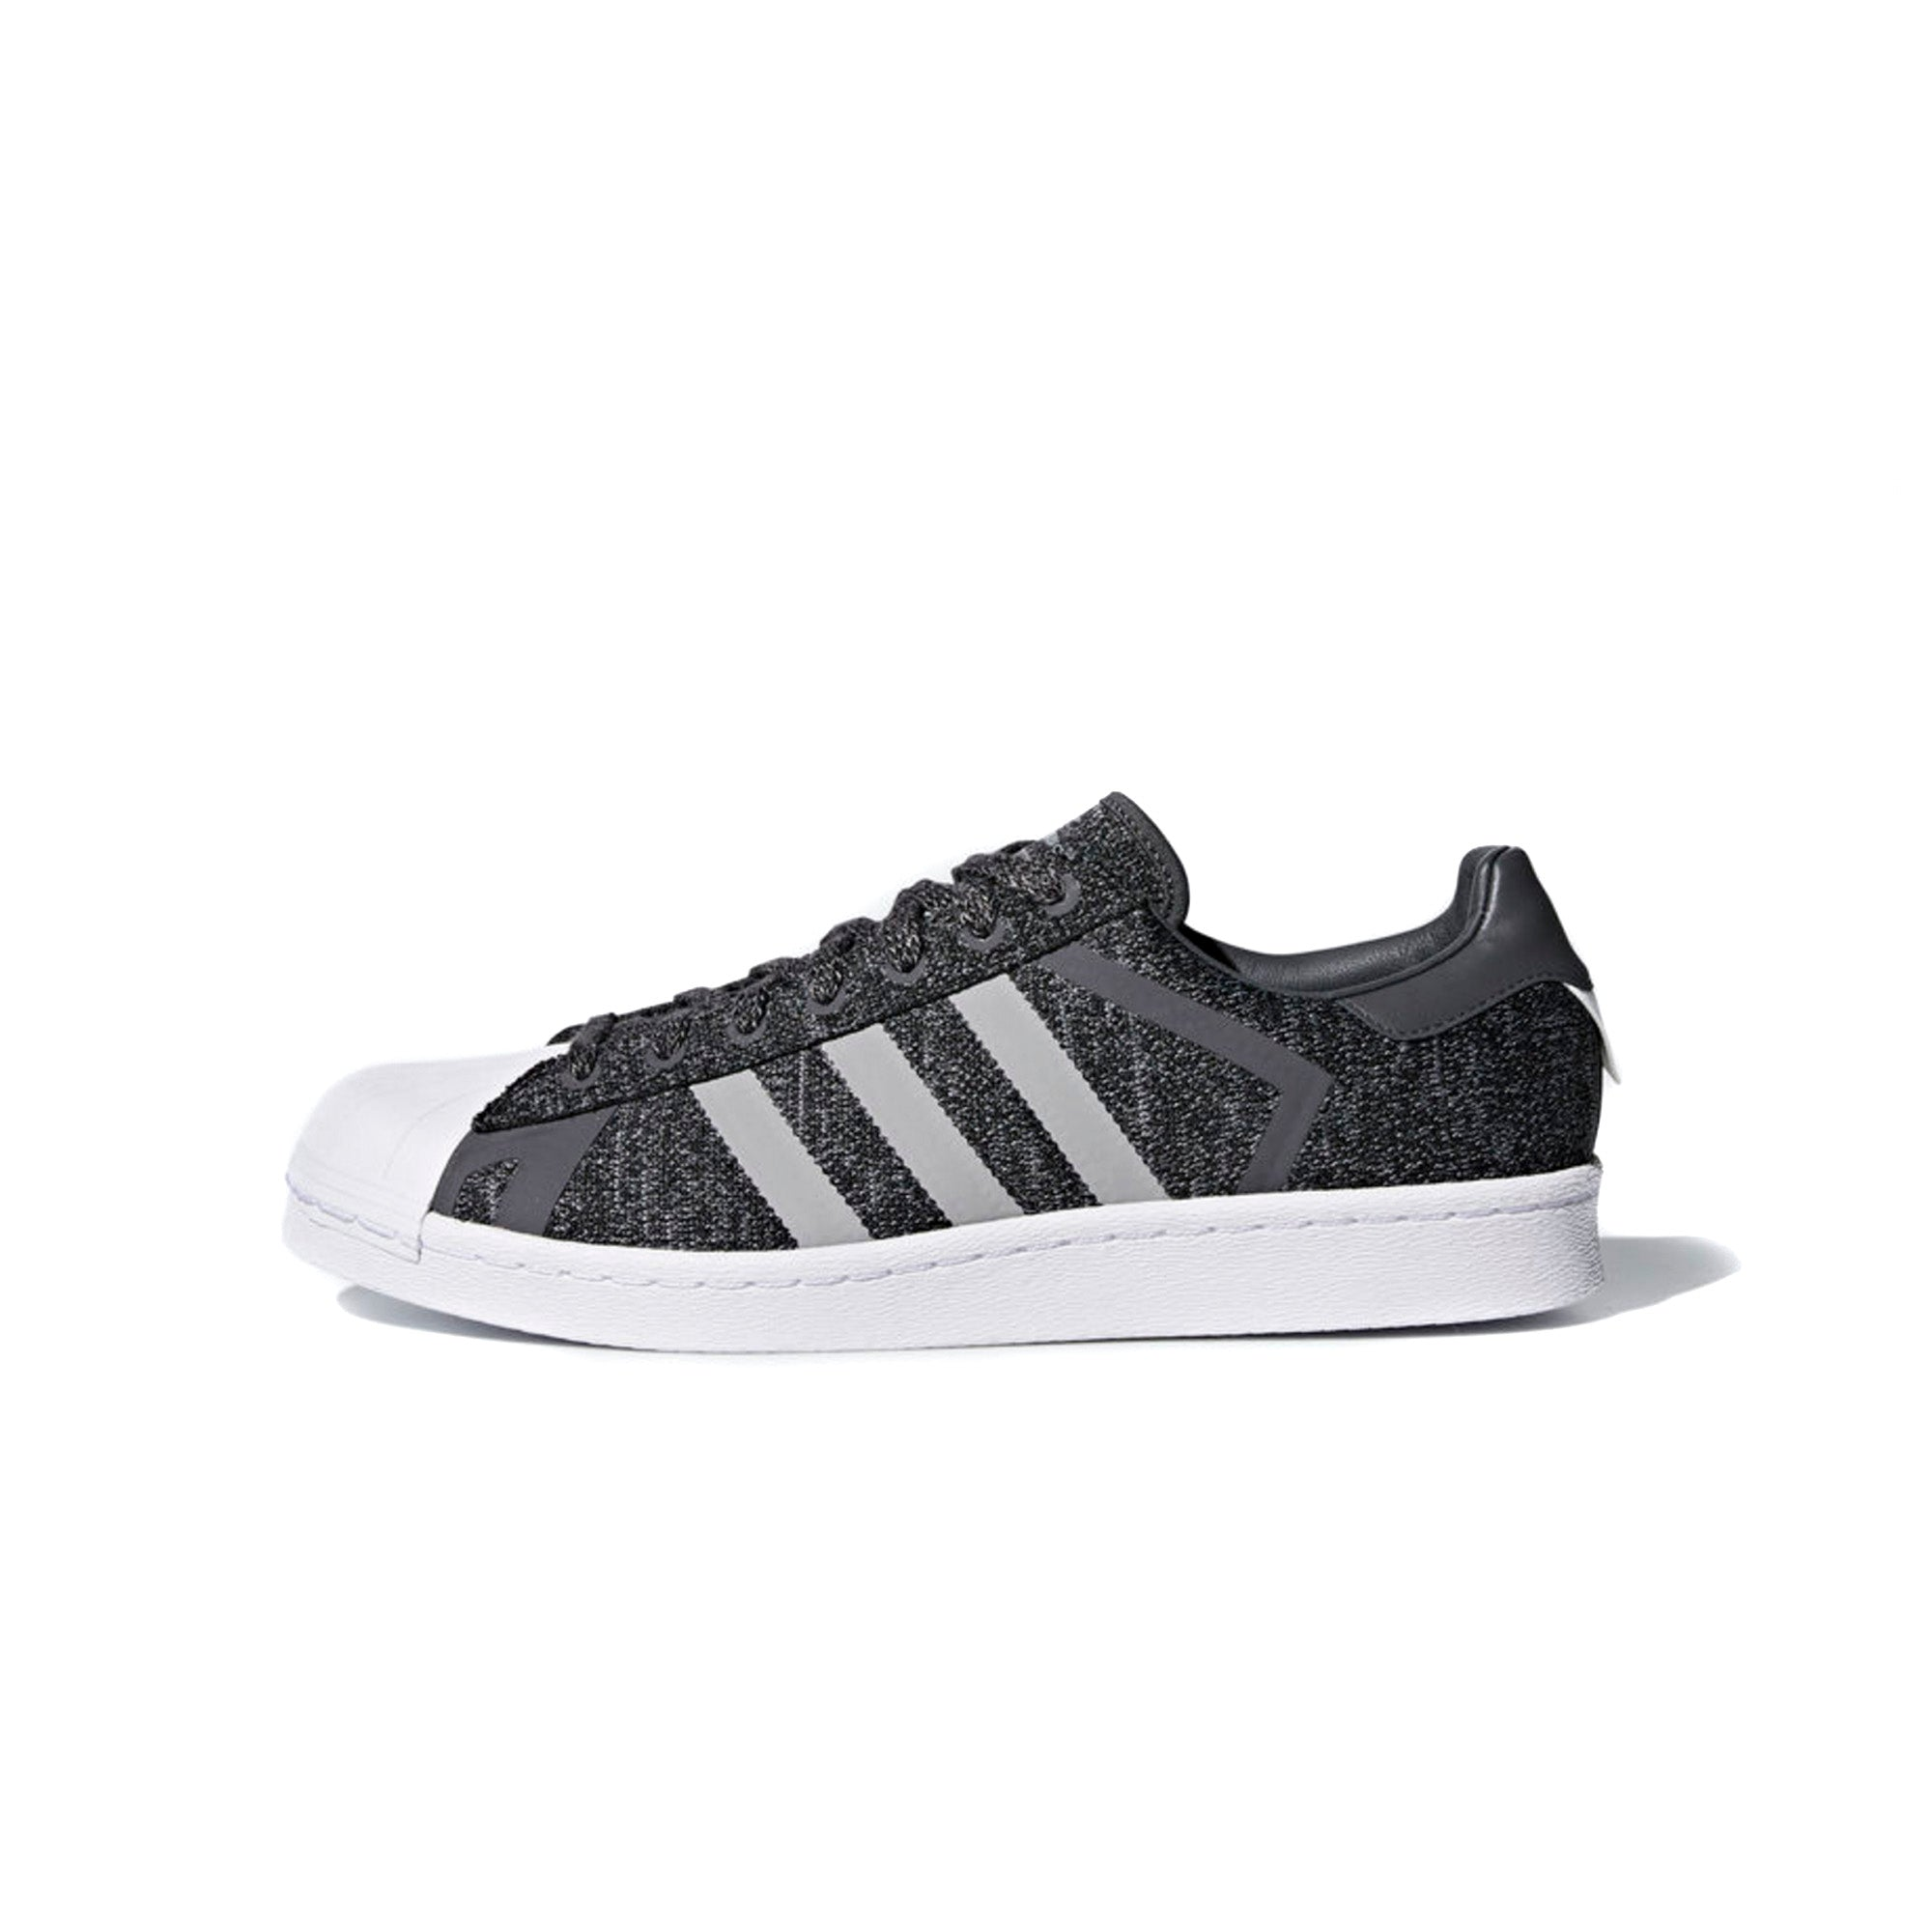 NEW Cheap Adidas WOMEN'S ORIGINALS SUPERSTAR SHOES [BY3723